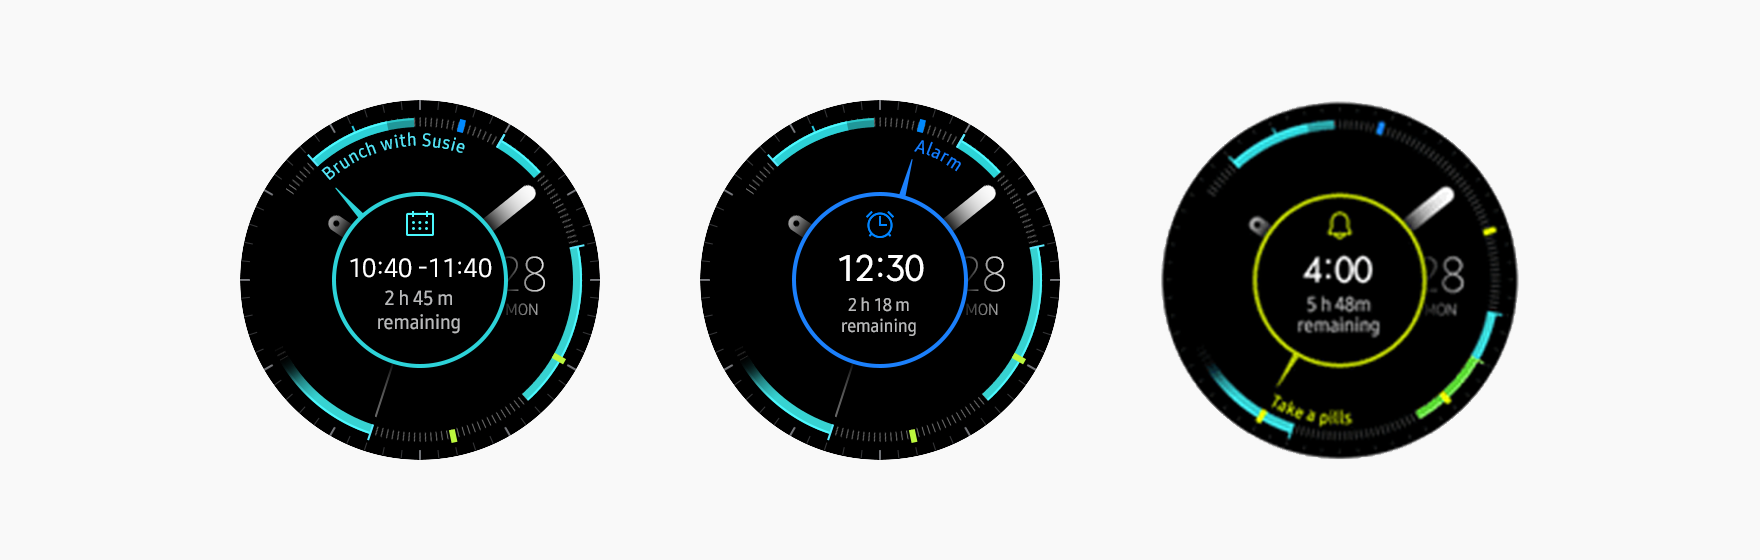 The My Day watch face allows users to check upcoming Calendar, Reminder, and Alarm events using the bezel.